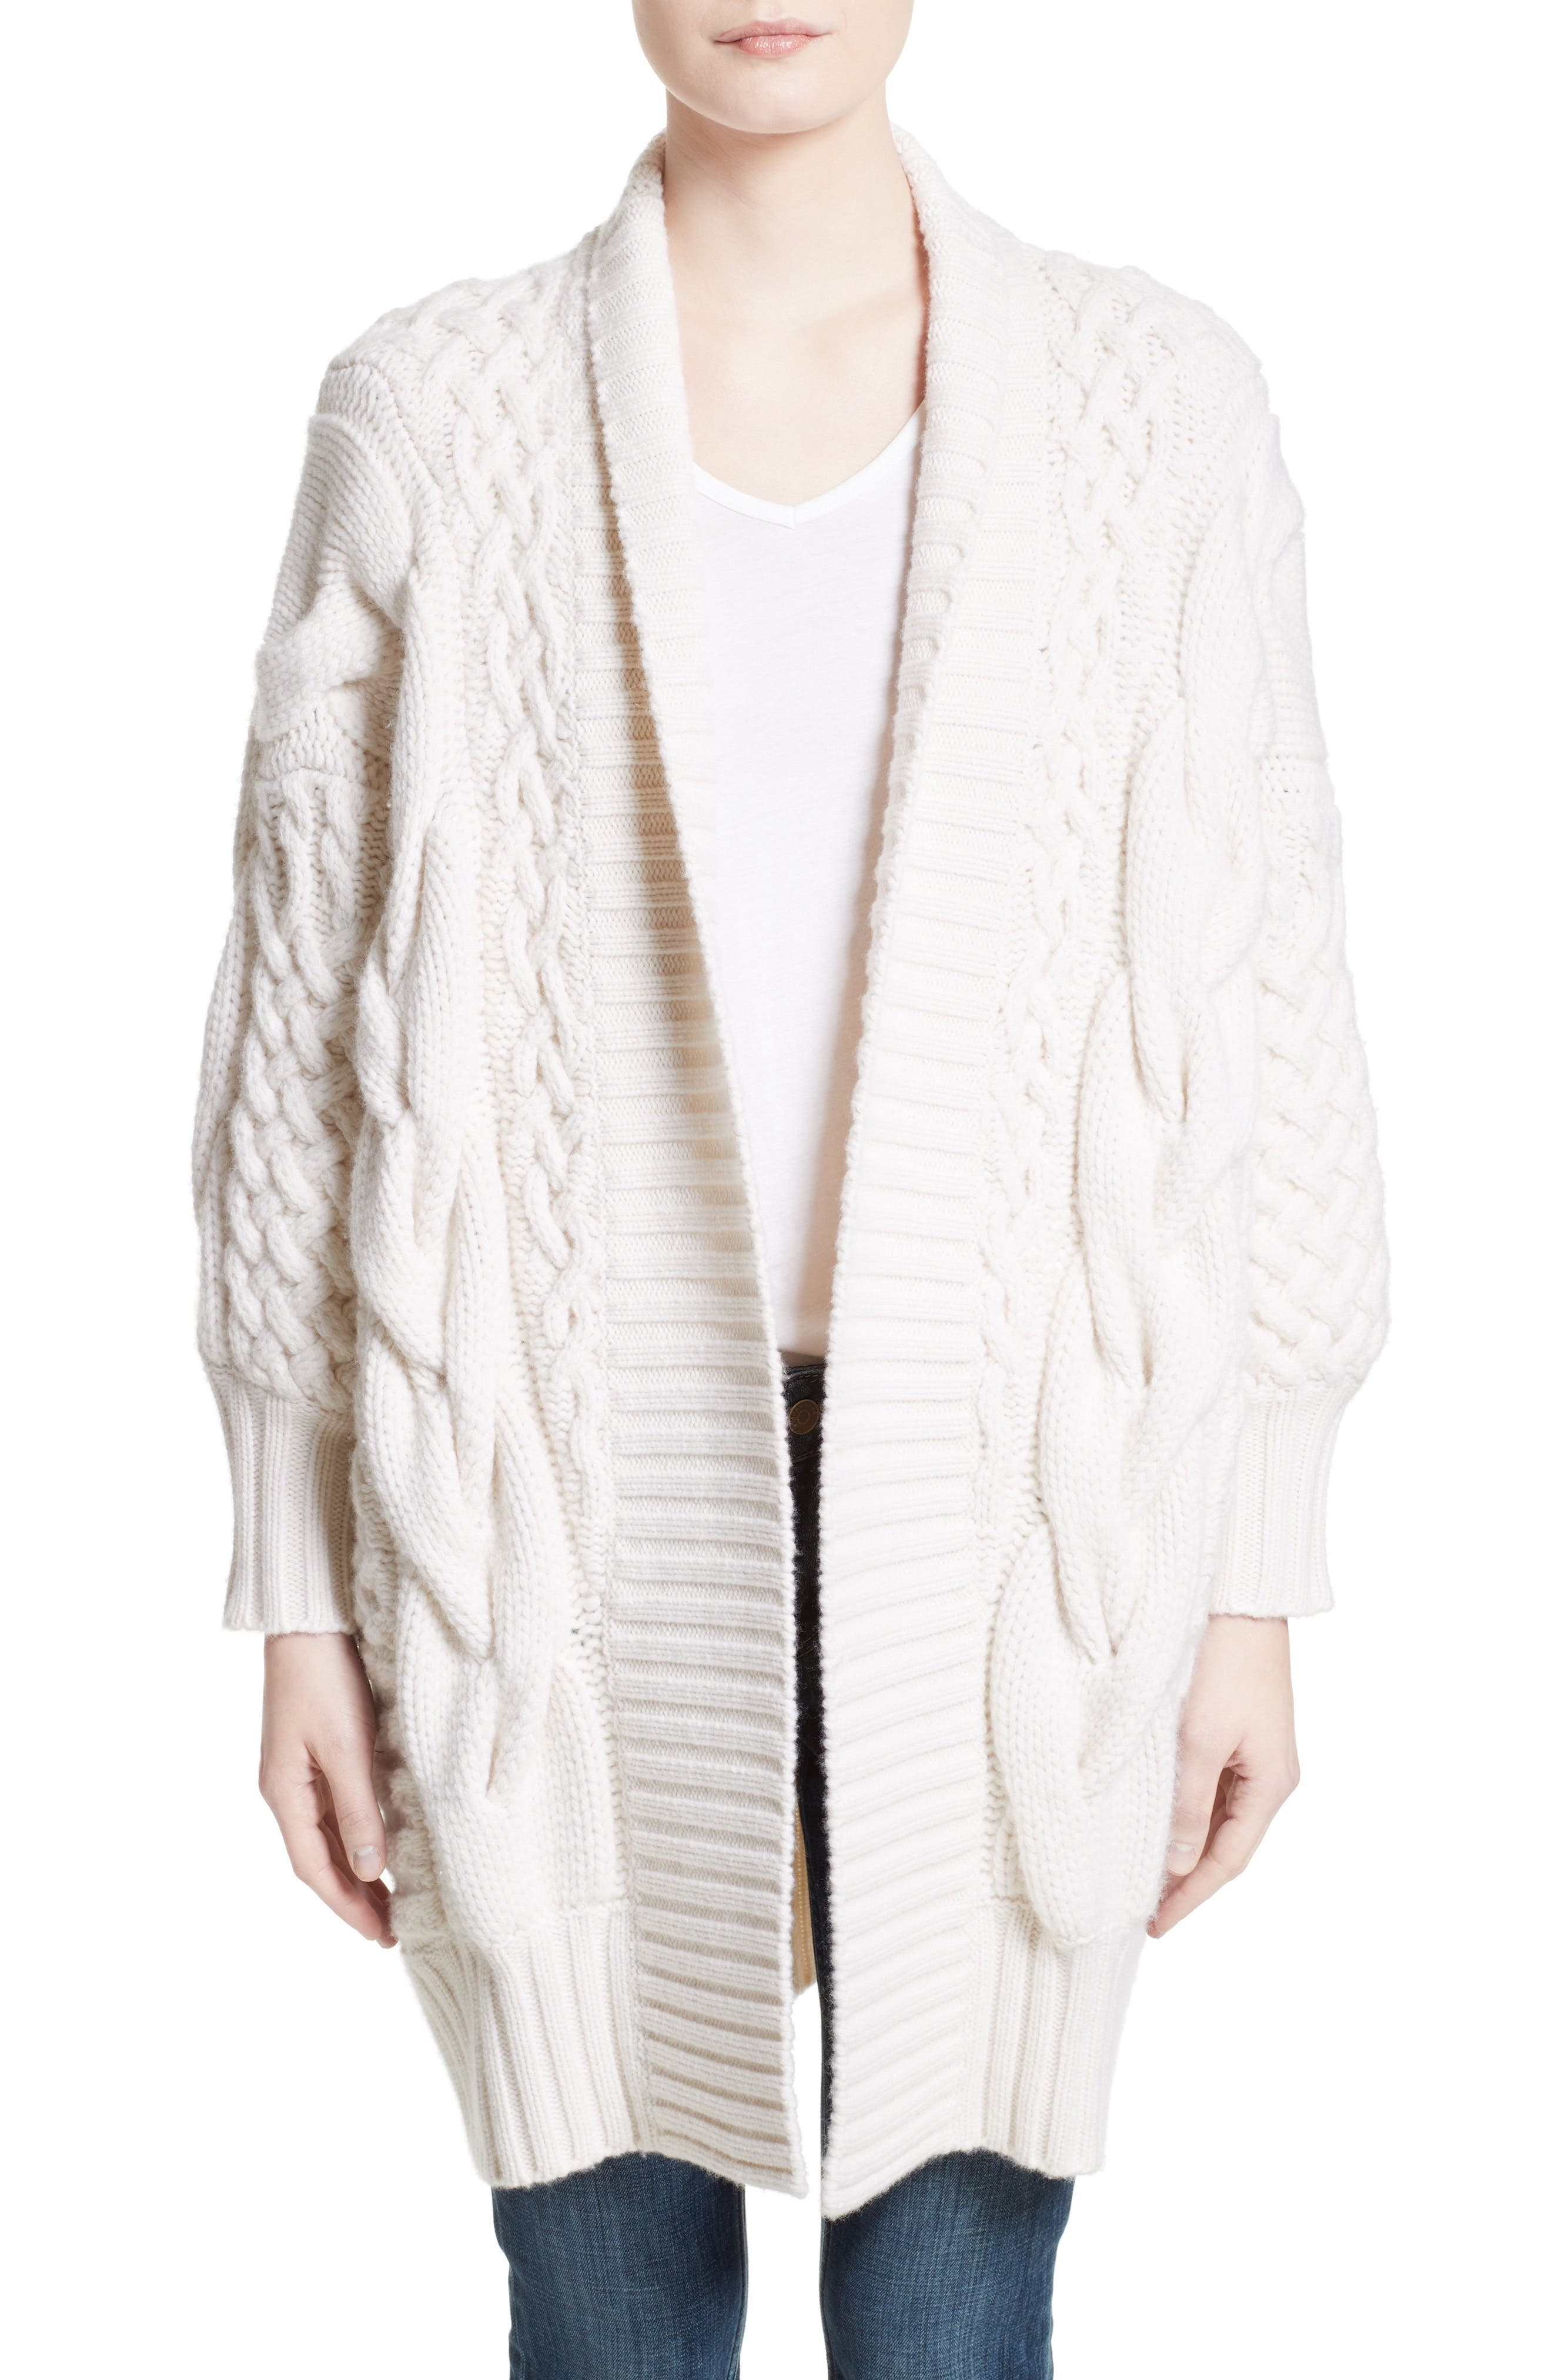 Camrosbrook Wool & Cashmere Open Cardigan,                         Main,                         color, 900